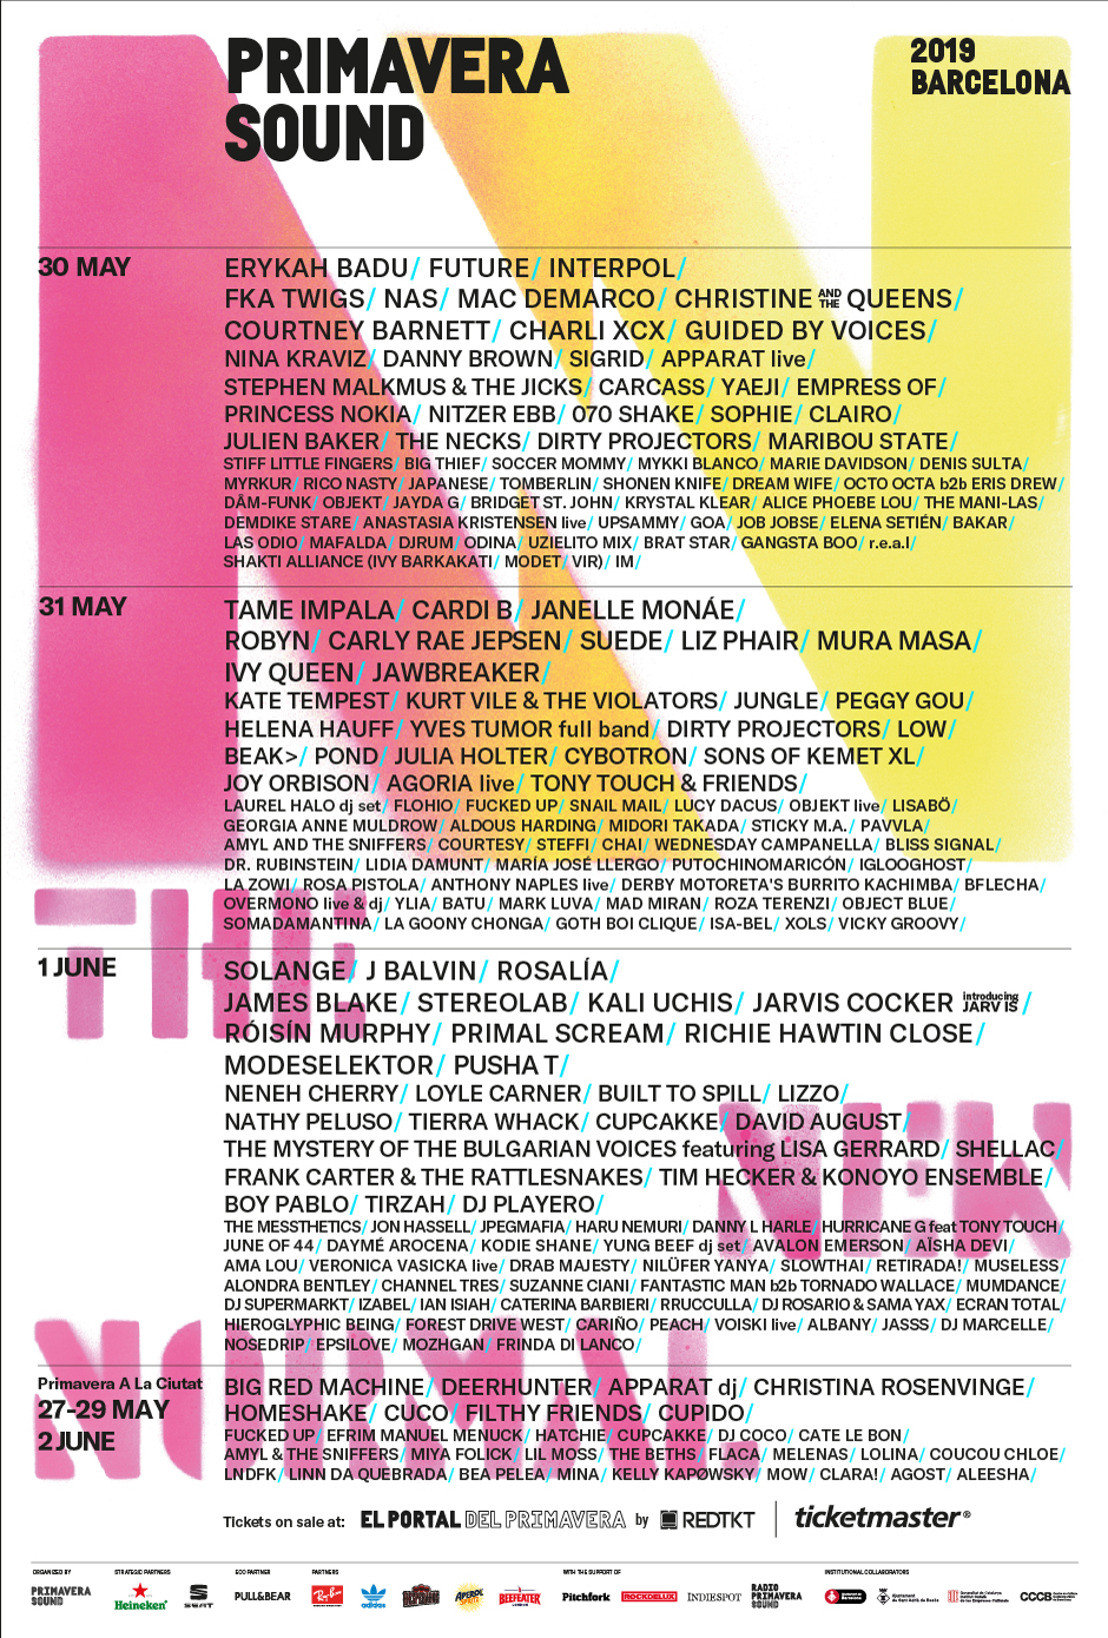 Equality, eclecticism and audacity in the revolutionary line up of Primavera Sound 2019